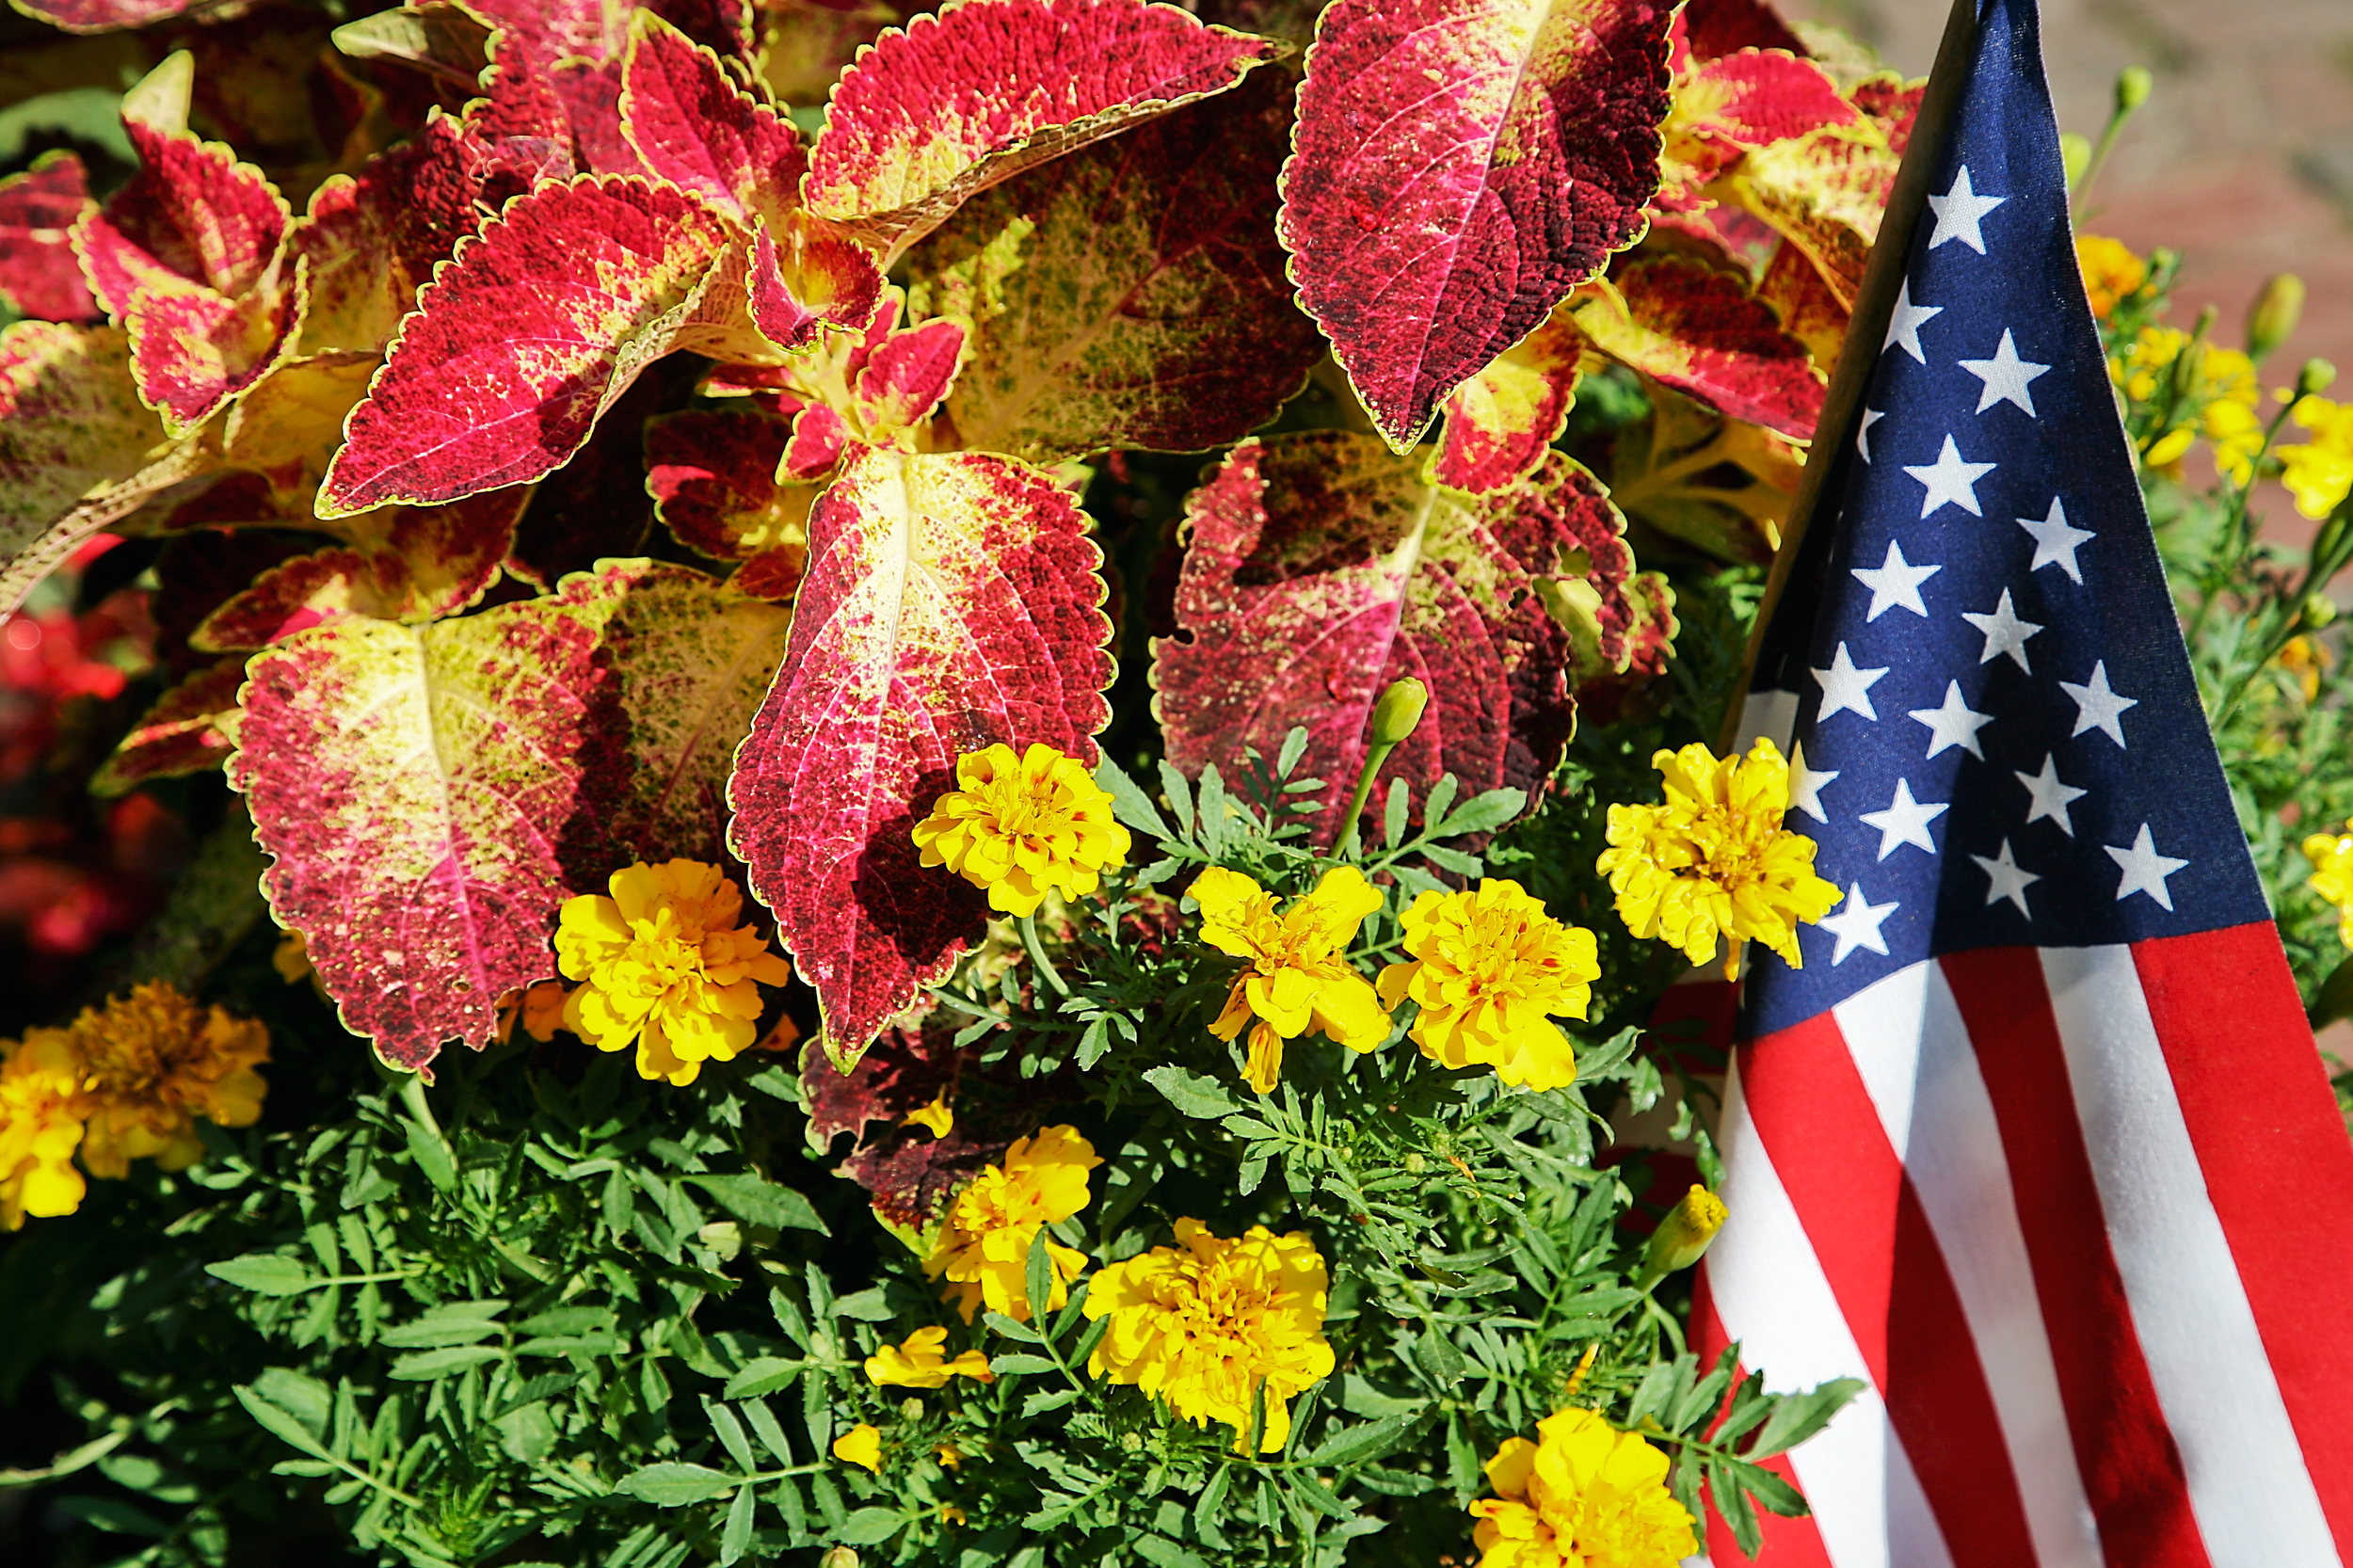 Flowers and Flag, Edgartown Square, MA